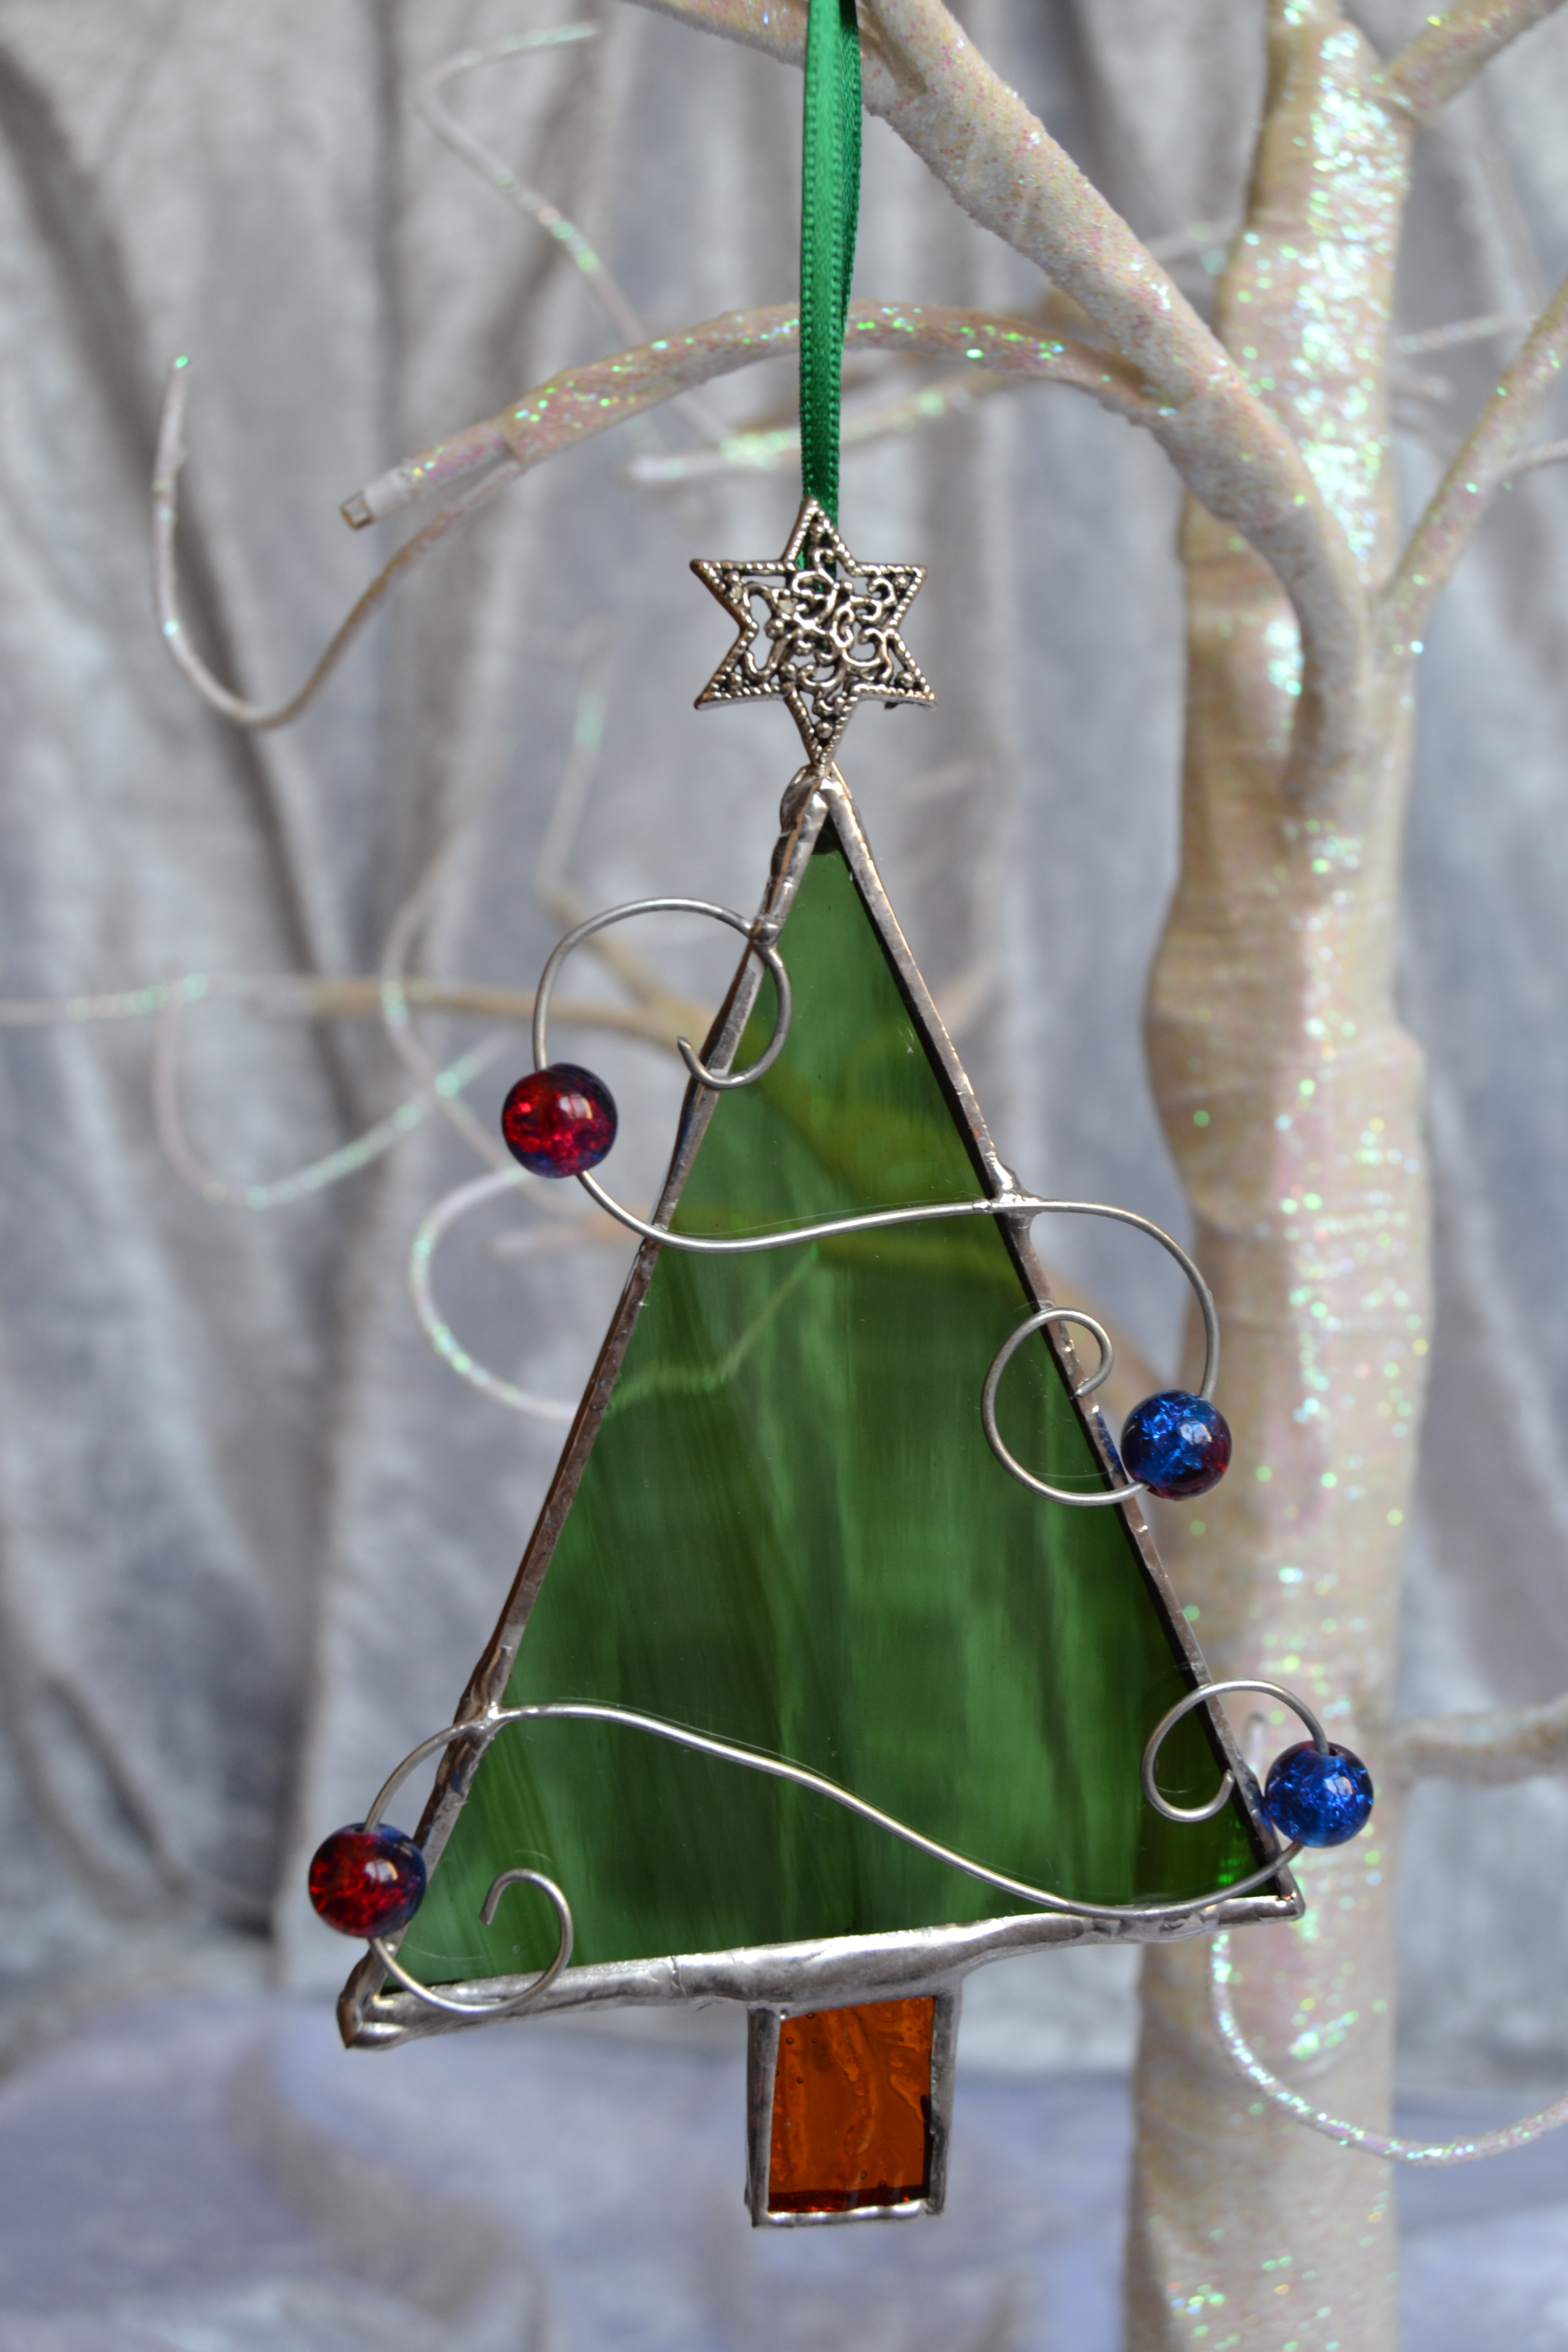 Curled wire Christmas Trees